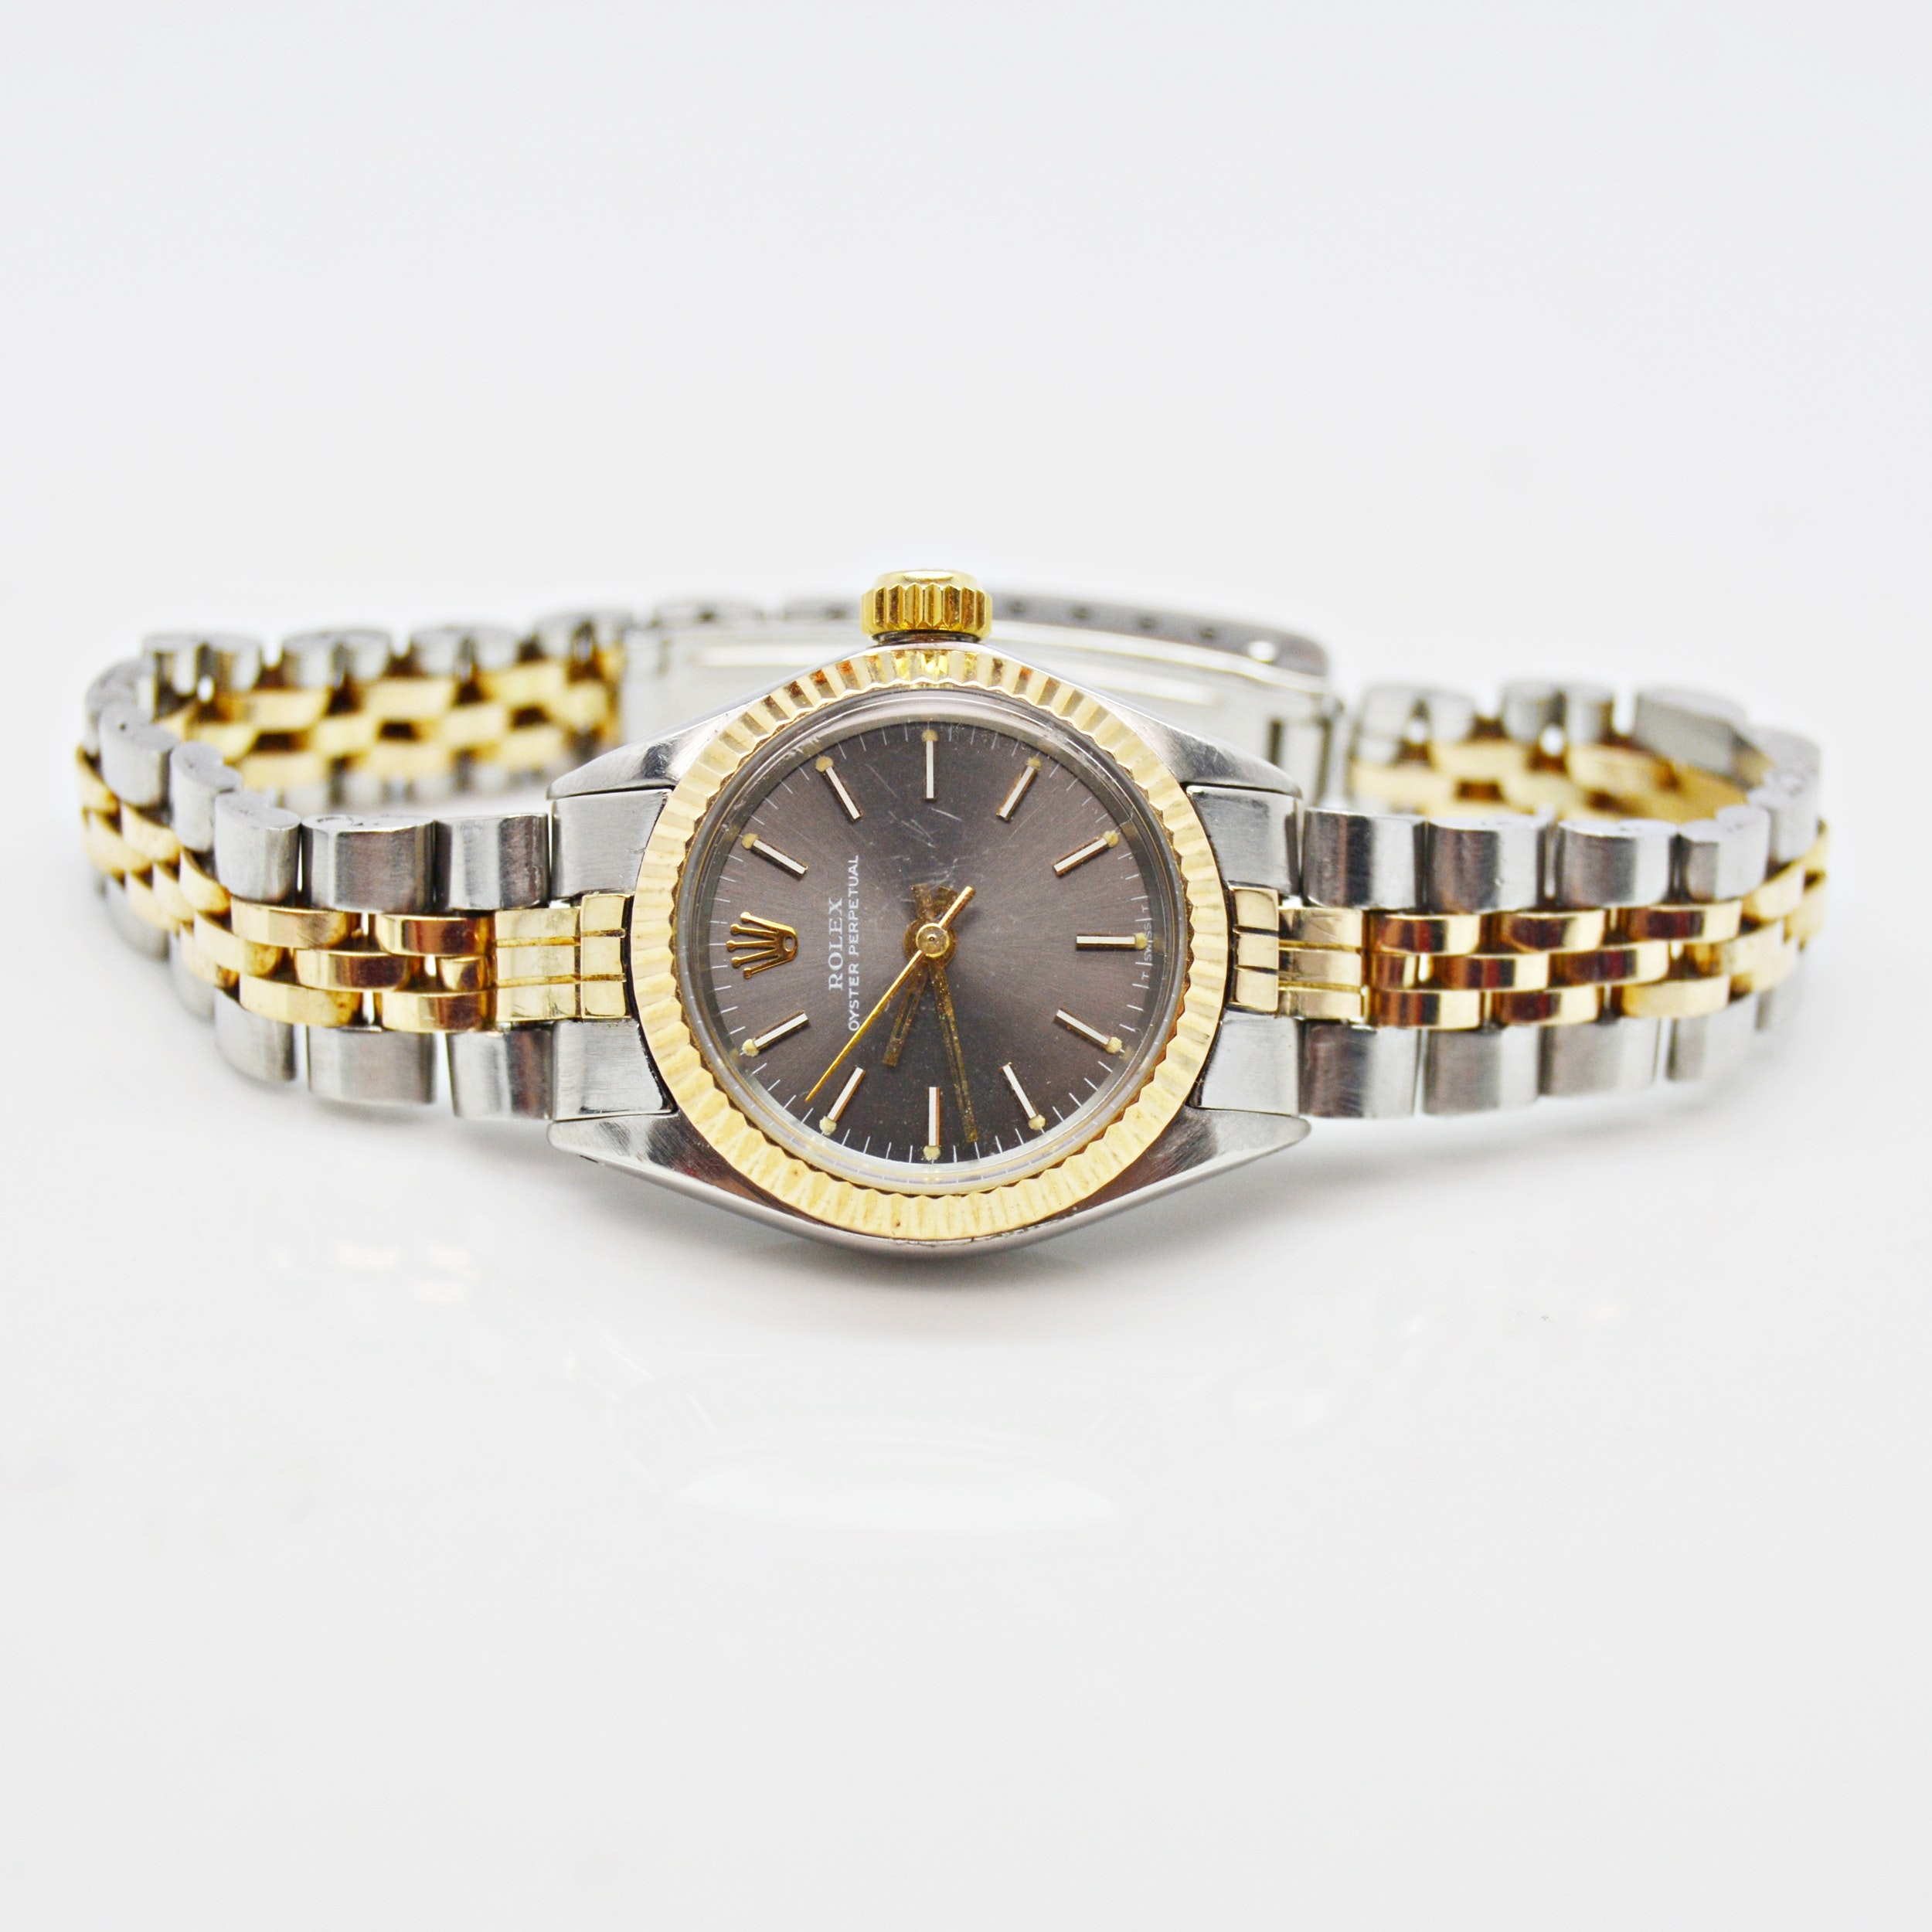 Rolex 14K Yellow Gold and Stainless Steel Oyster Perpetual Wristwatch